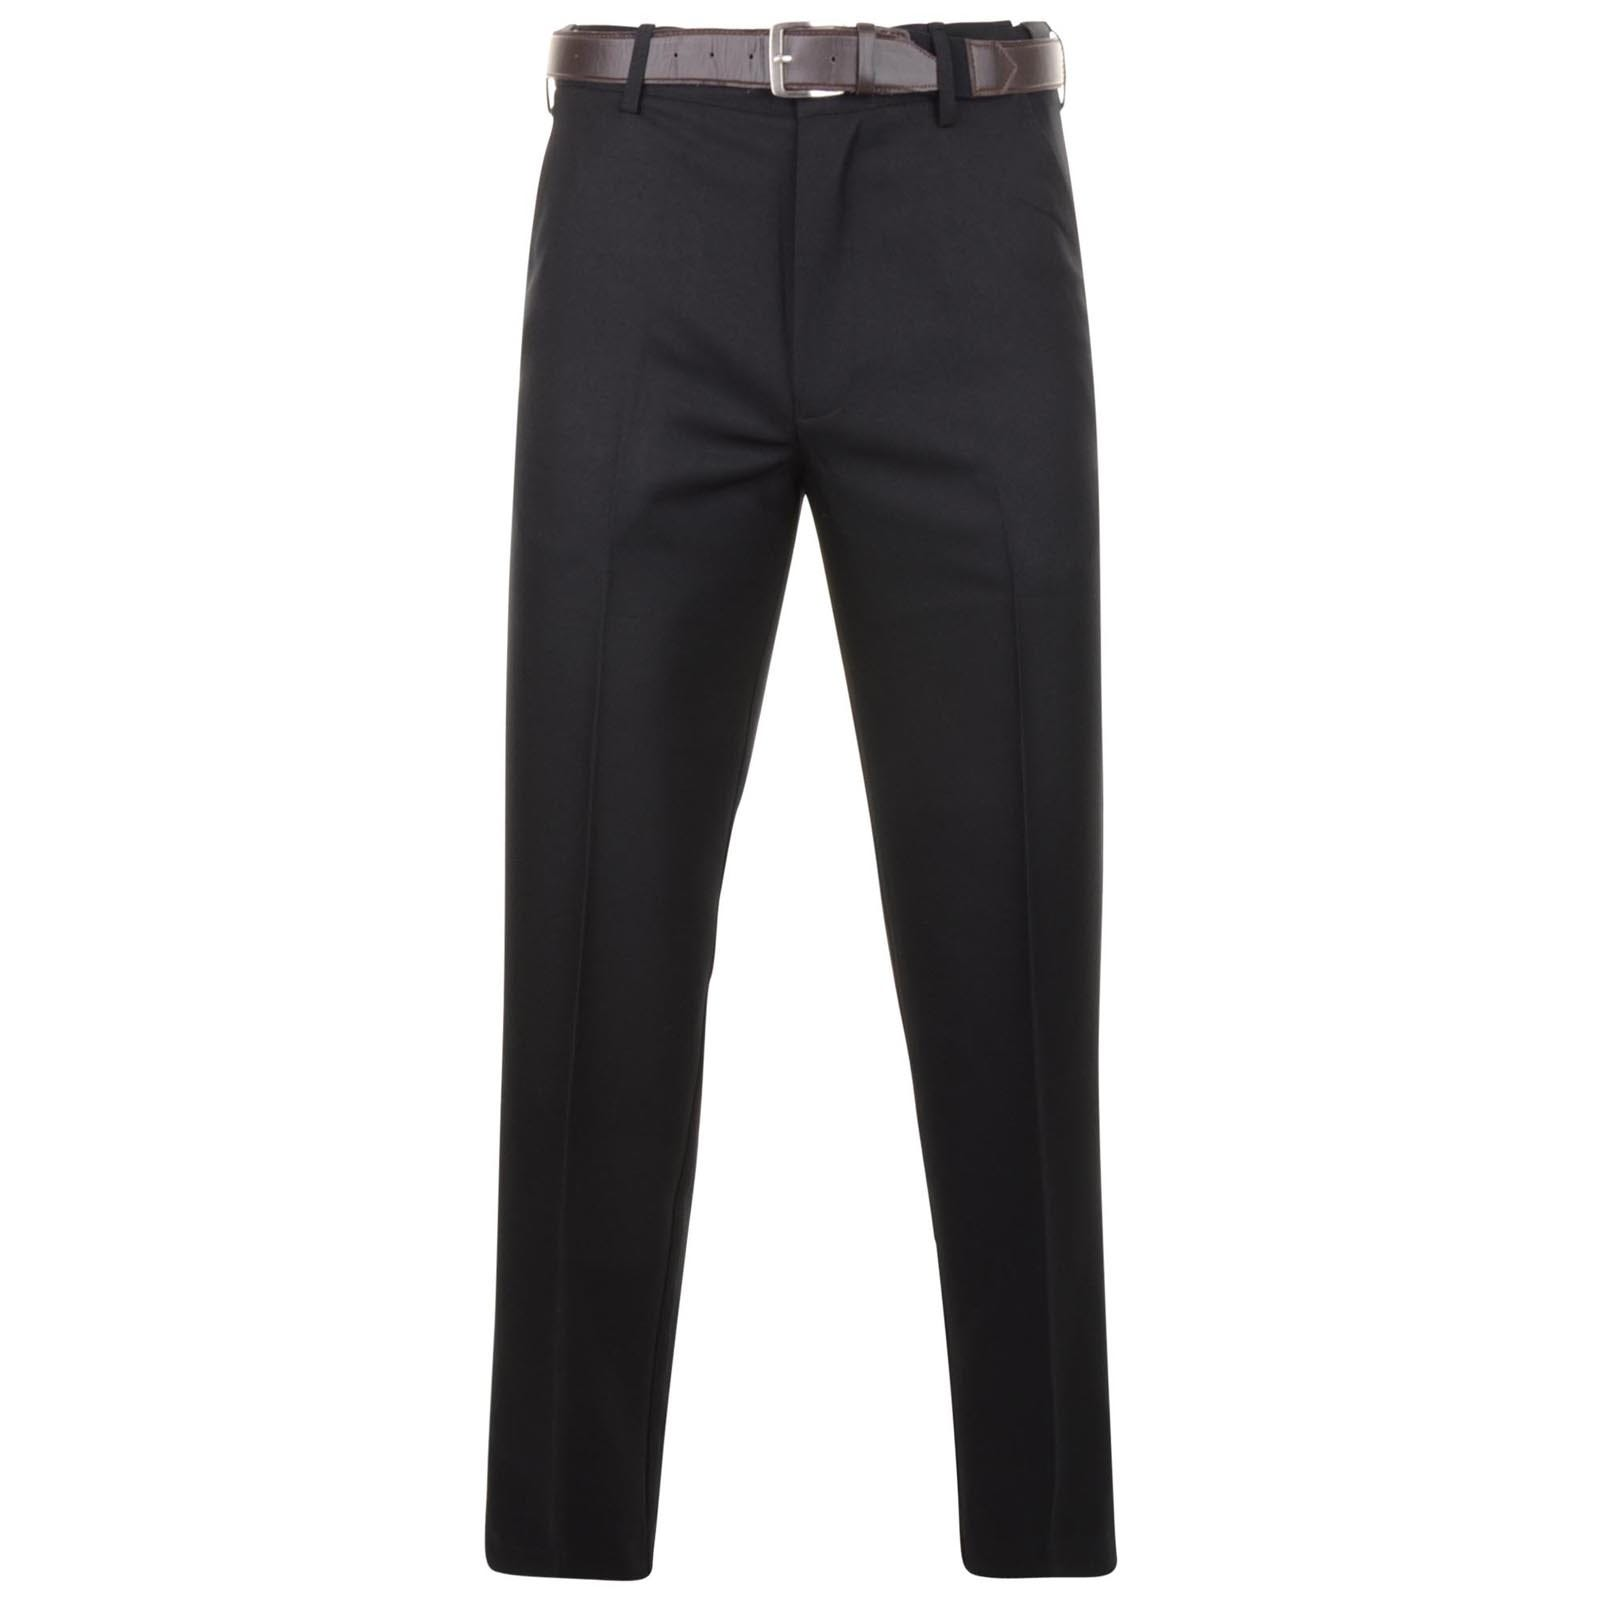 6bc605be0 Kam Tall Mens Trousers